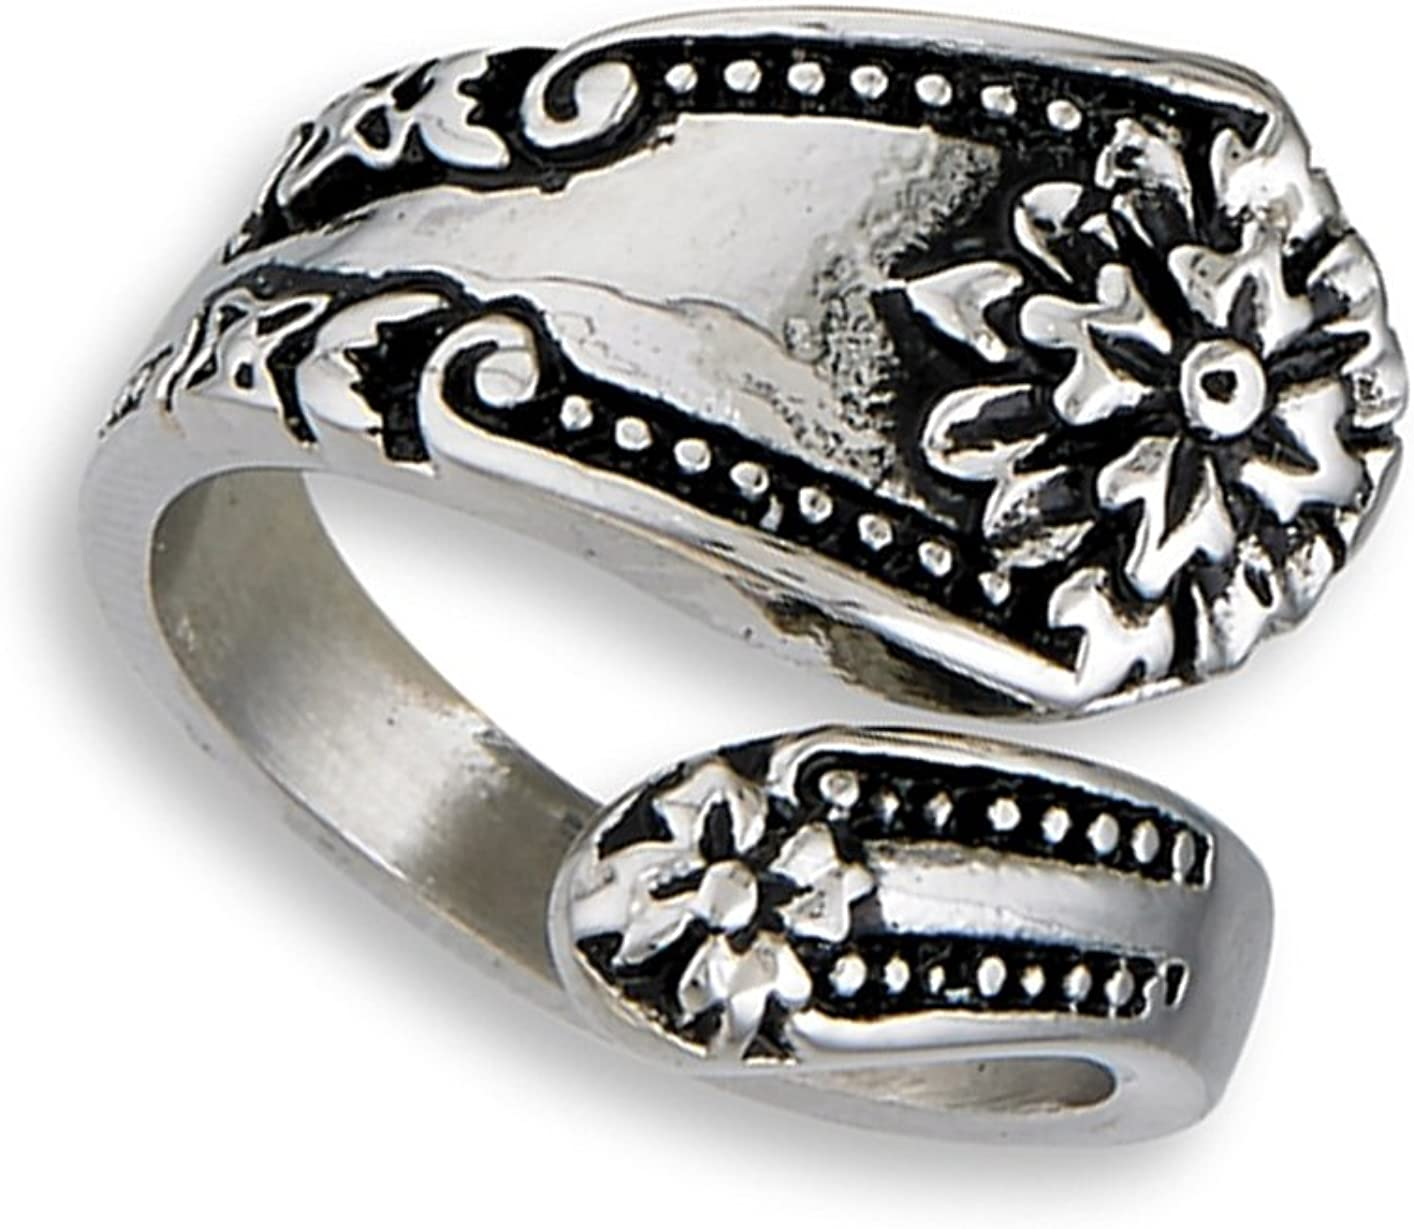 Victorian Flower Spoon Ring Stainless Steel Open Wrap Vintage Band Sizes 7-10